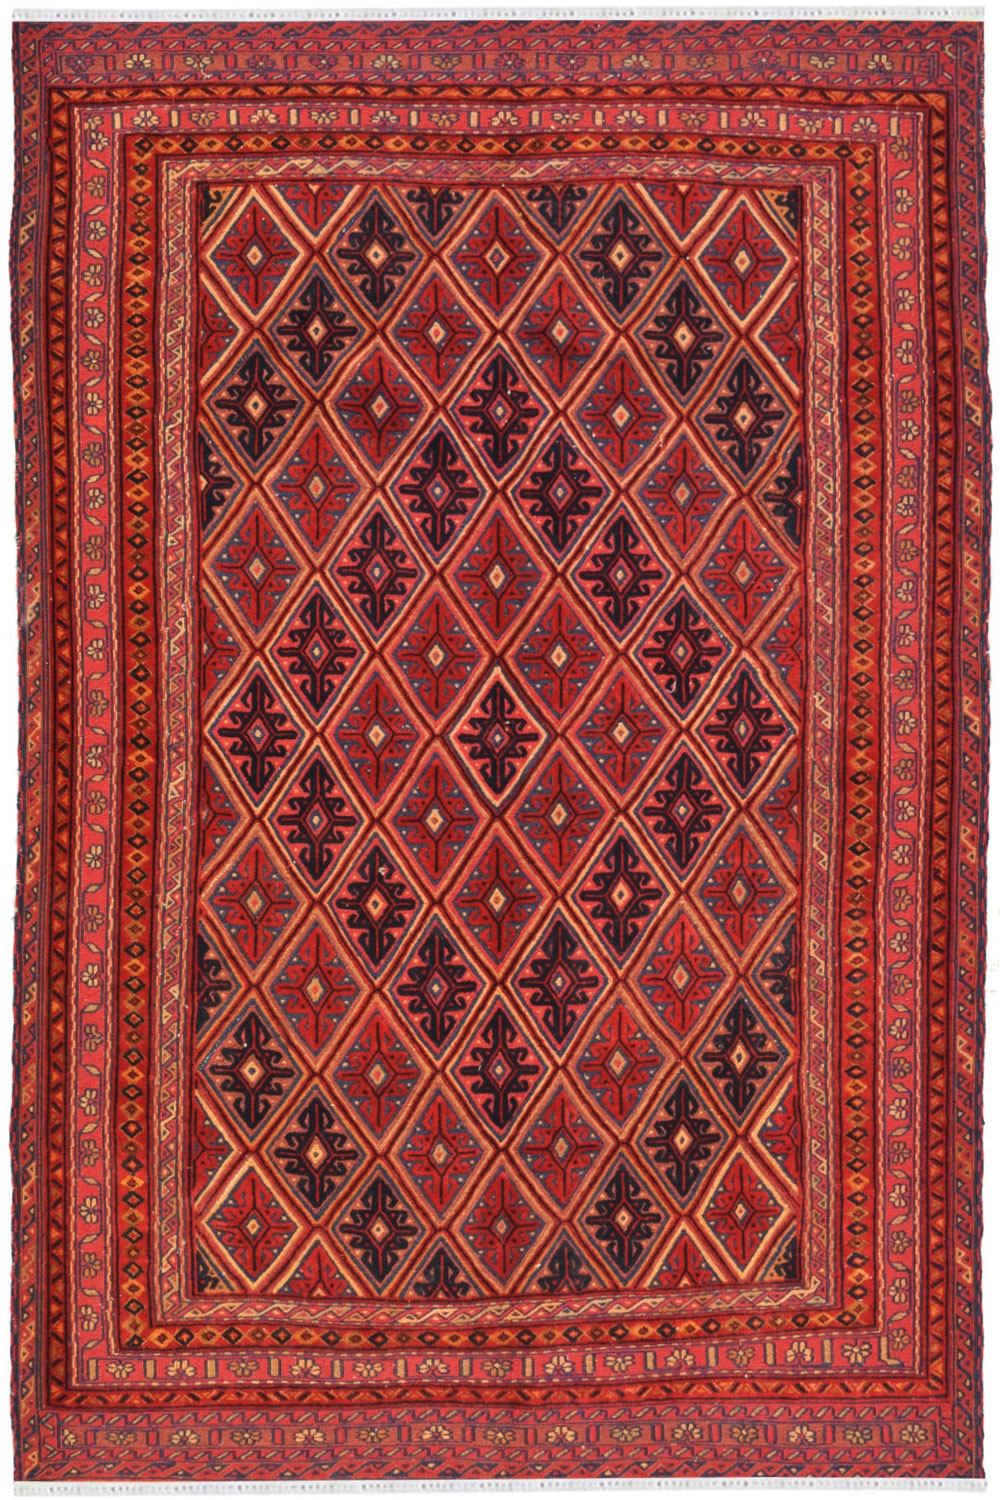 Beautiful Caucasian Abstract Turkish Kilim Rugs For Sale